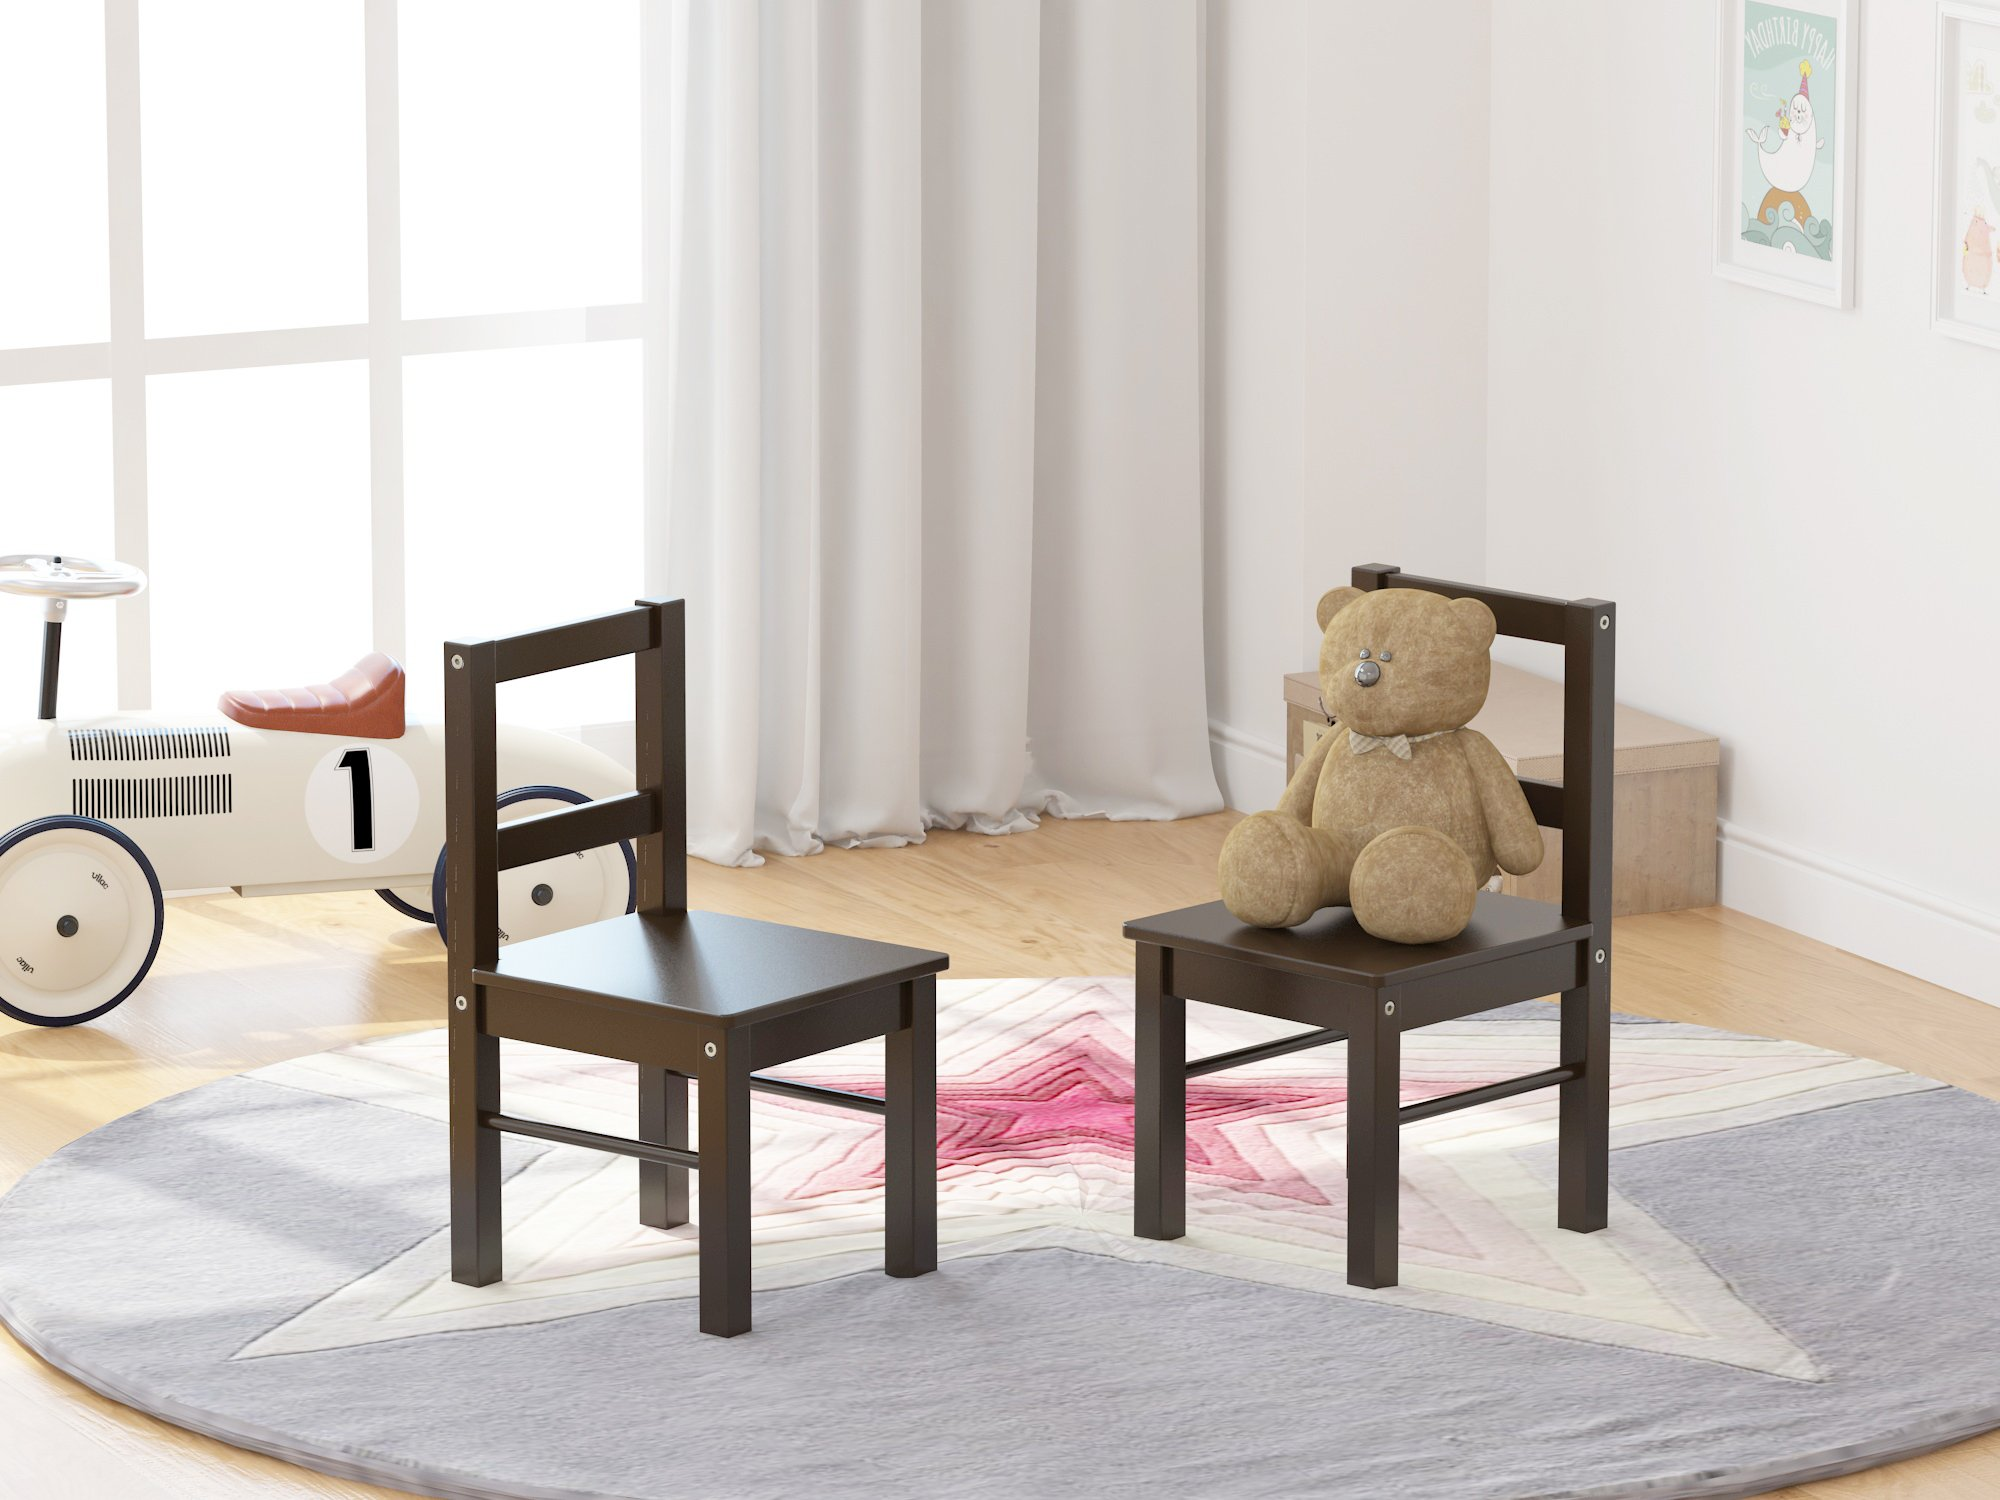 UTEX Child's Wooden Chair Pair for Play or Activity, Set of 2, Espresso by UTEX (Image #3)